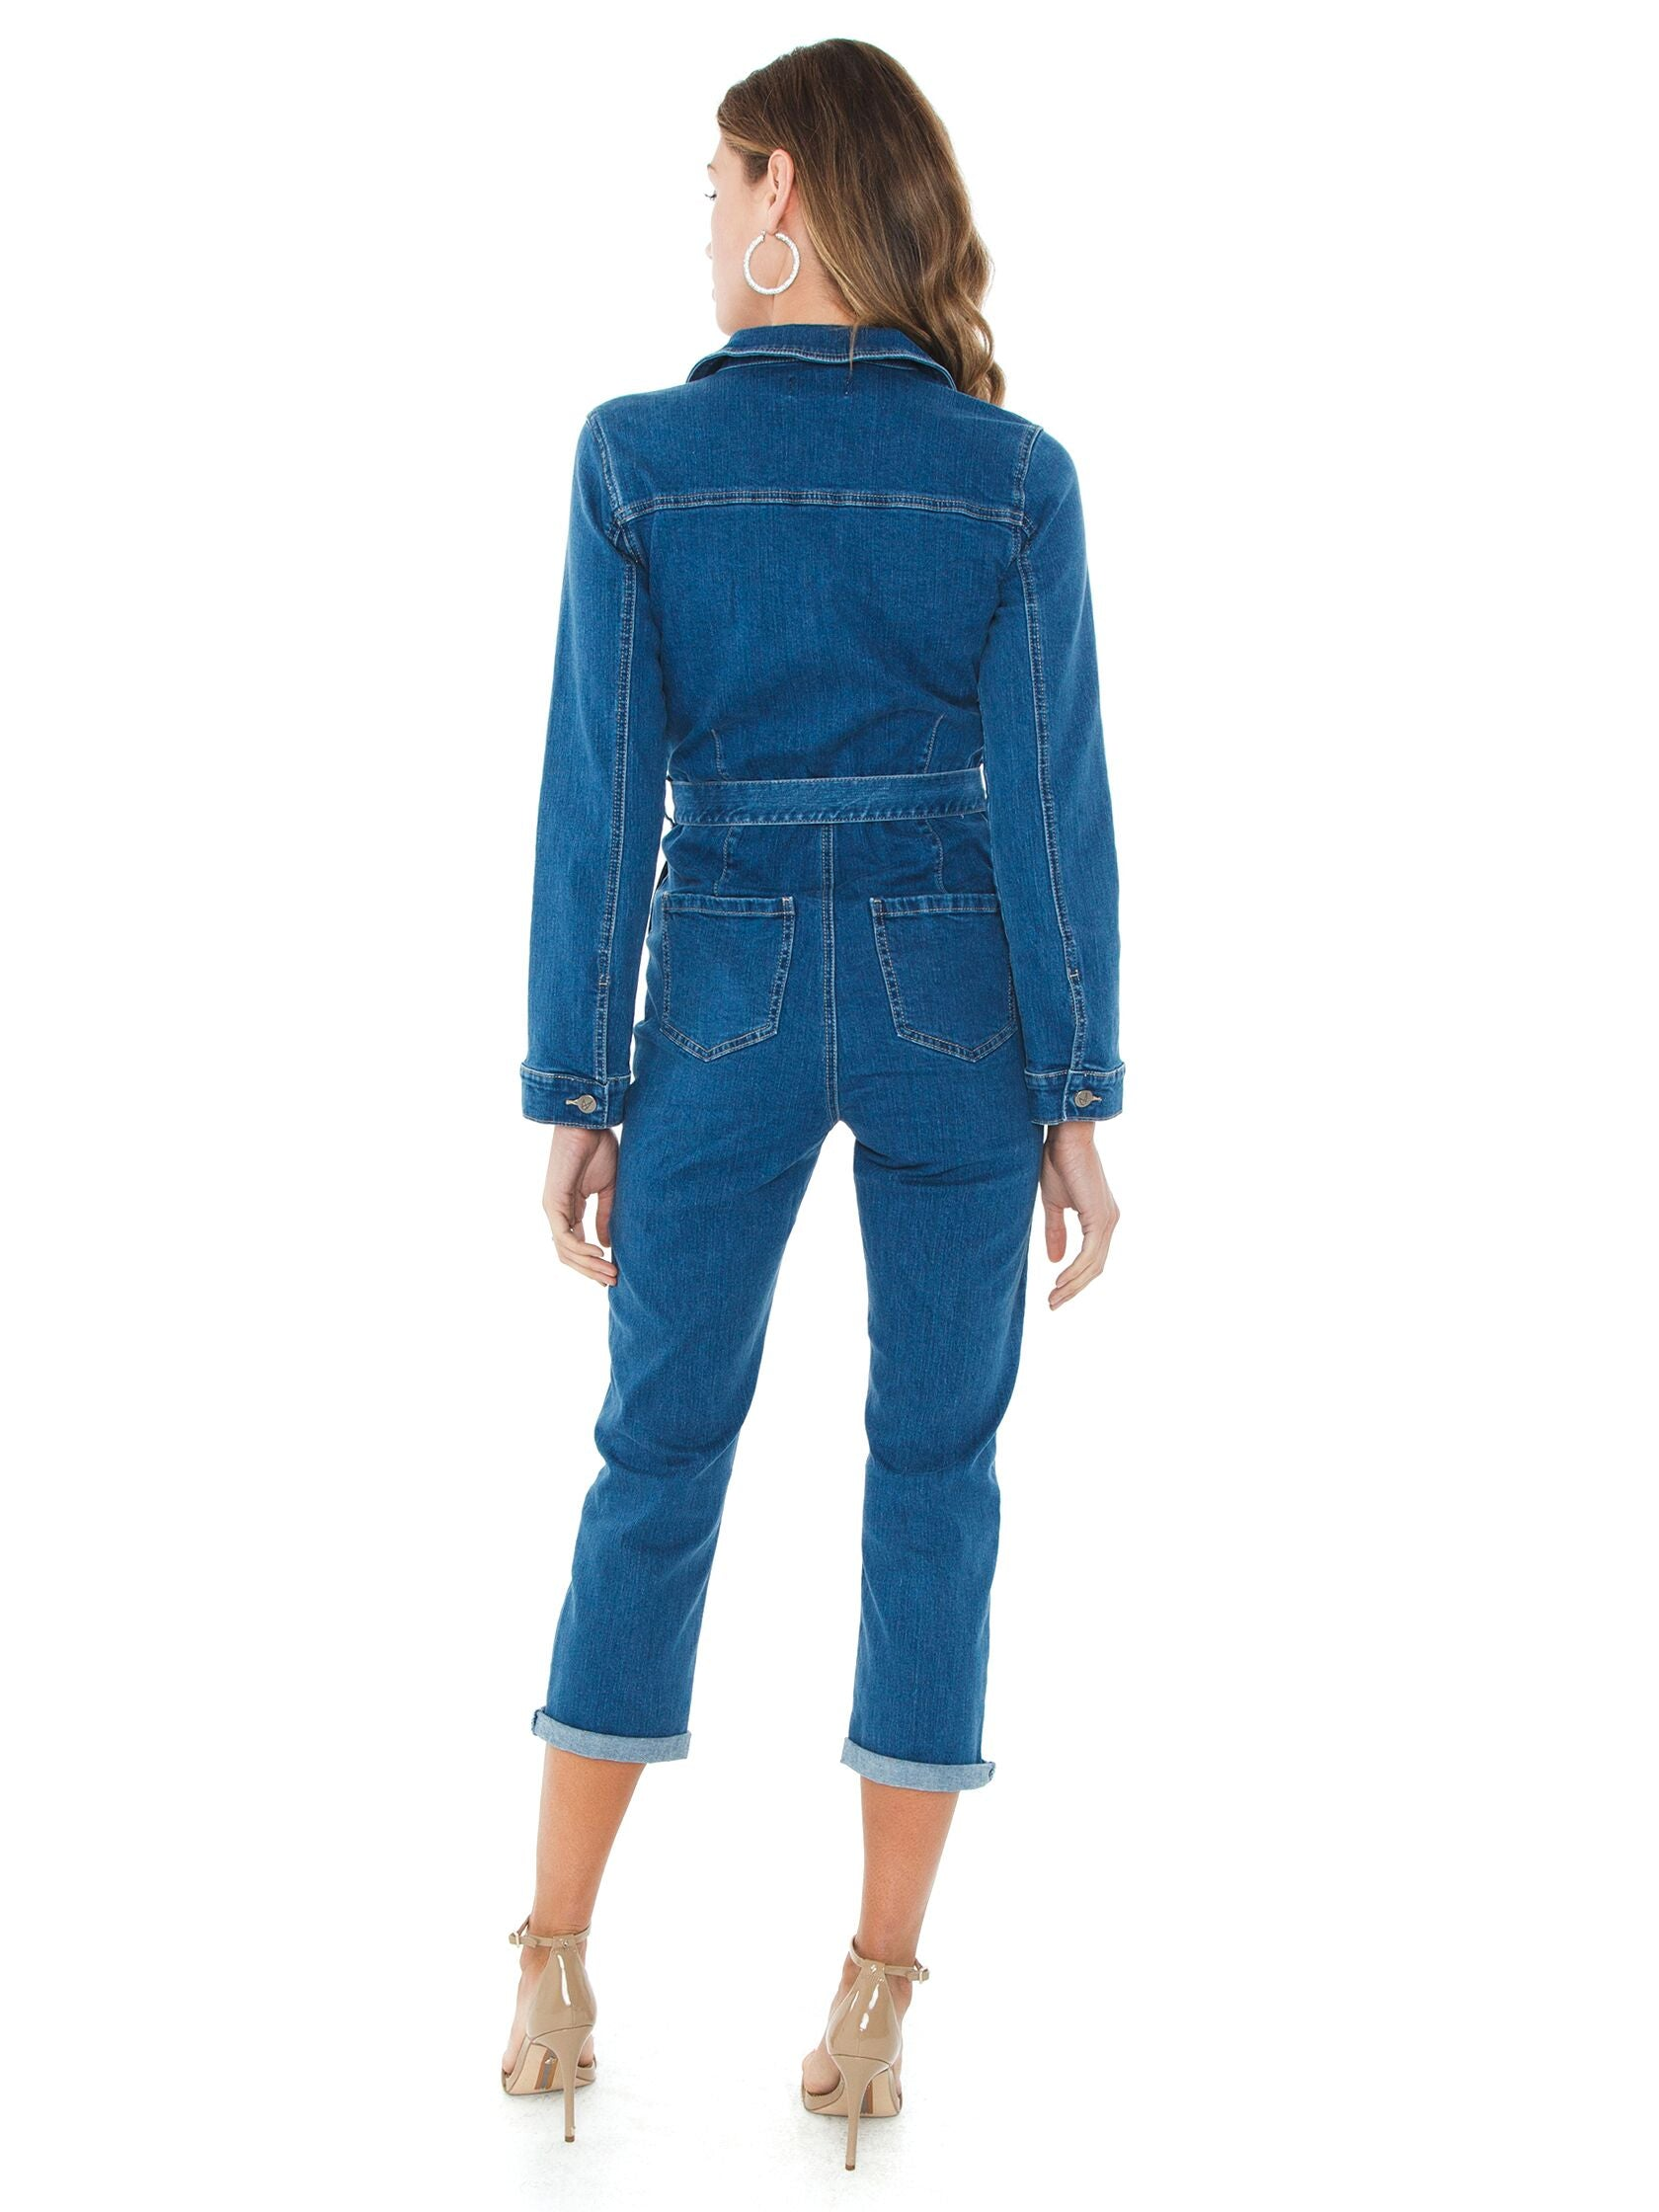 Women wearing a jumpsuit rental from MINKPINK called Keeping Time Boiler Suit